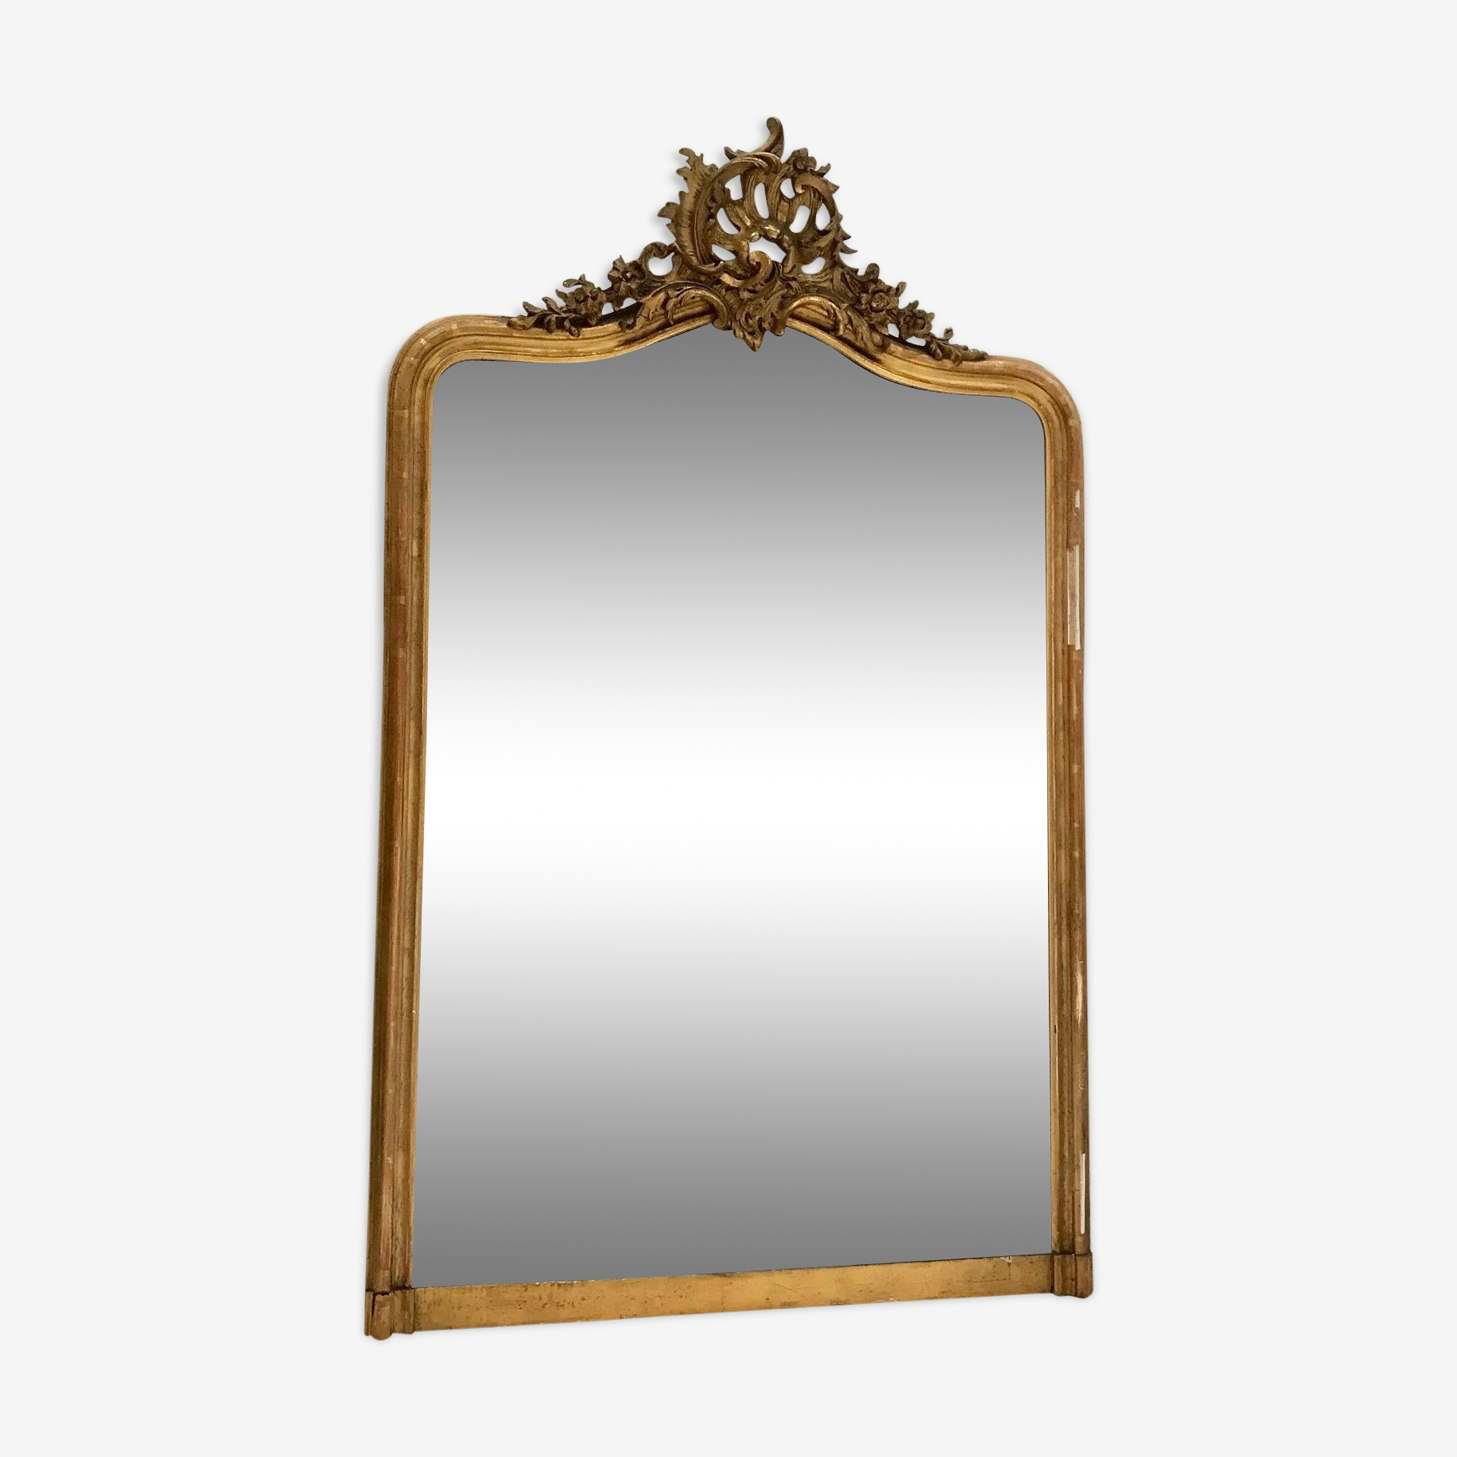 Louis XV style gilded stucco and wood mirror 145x92cm